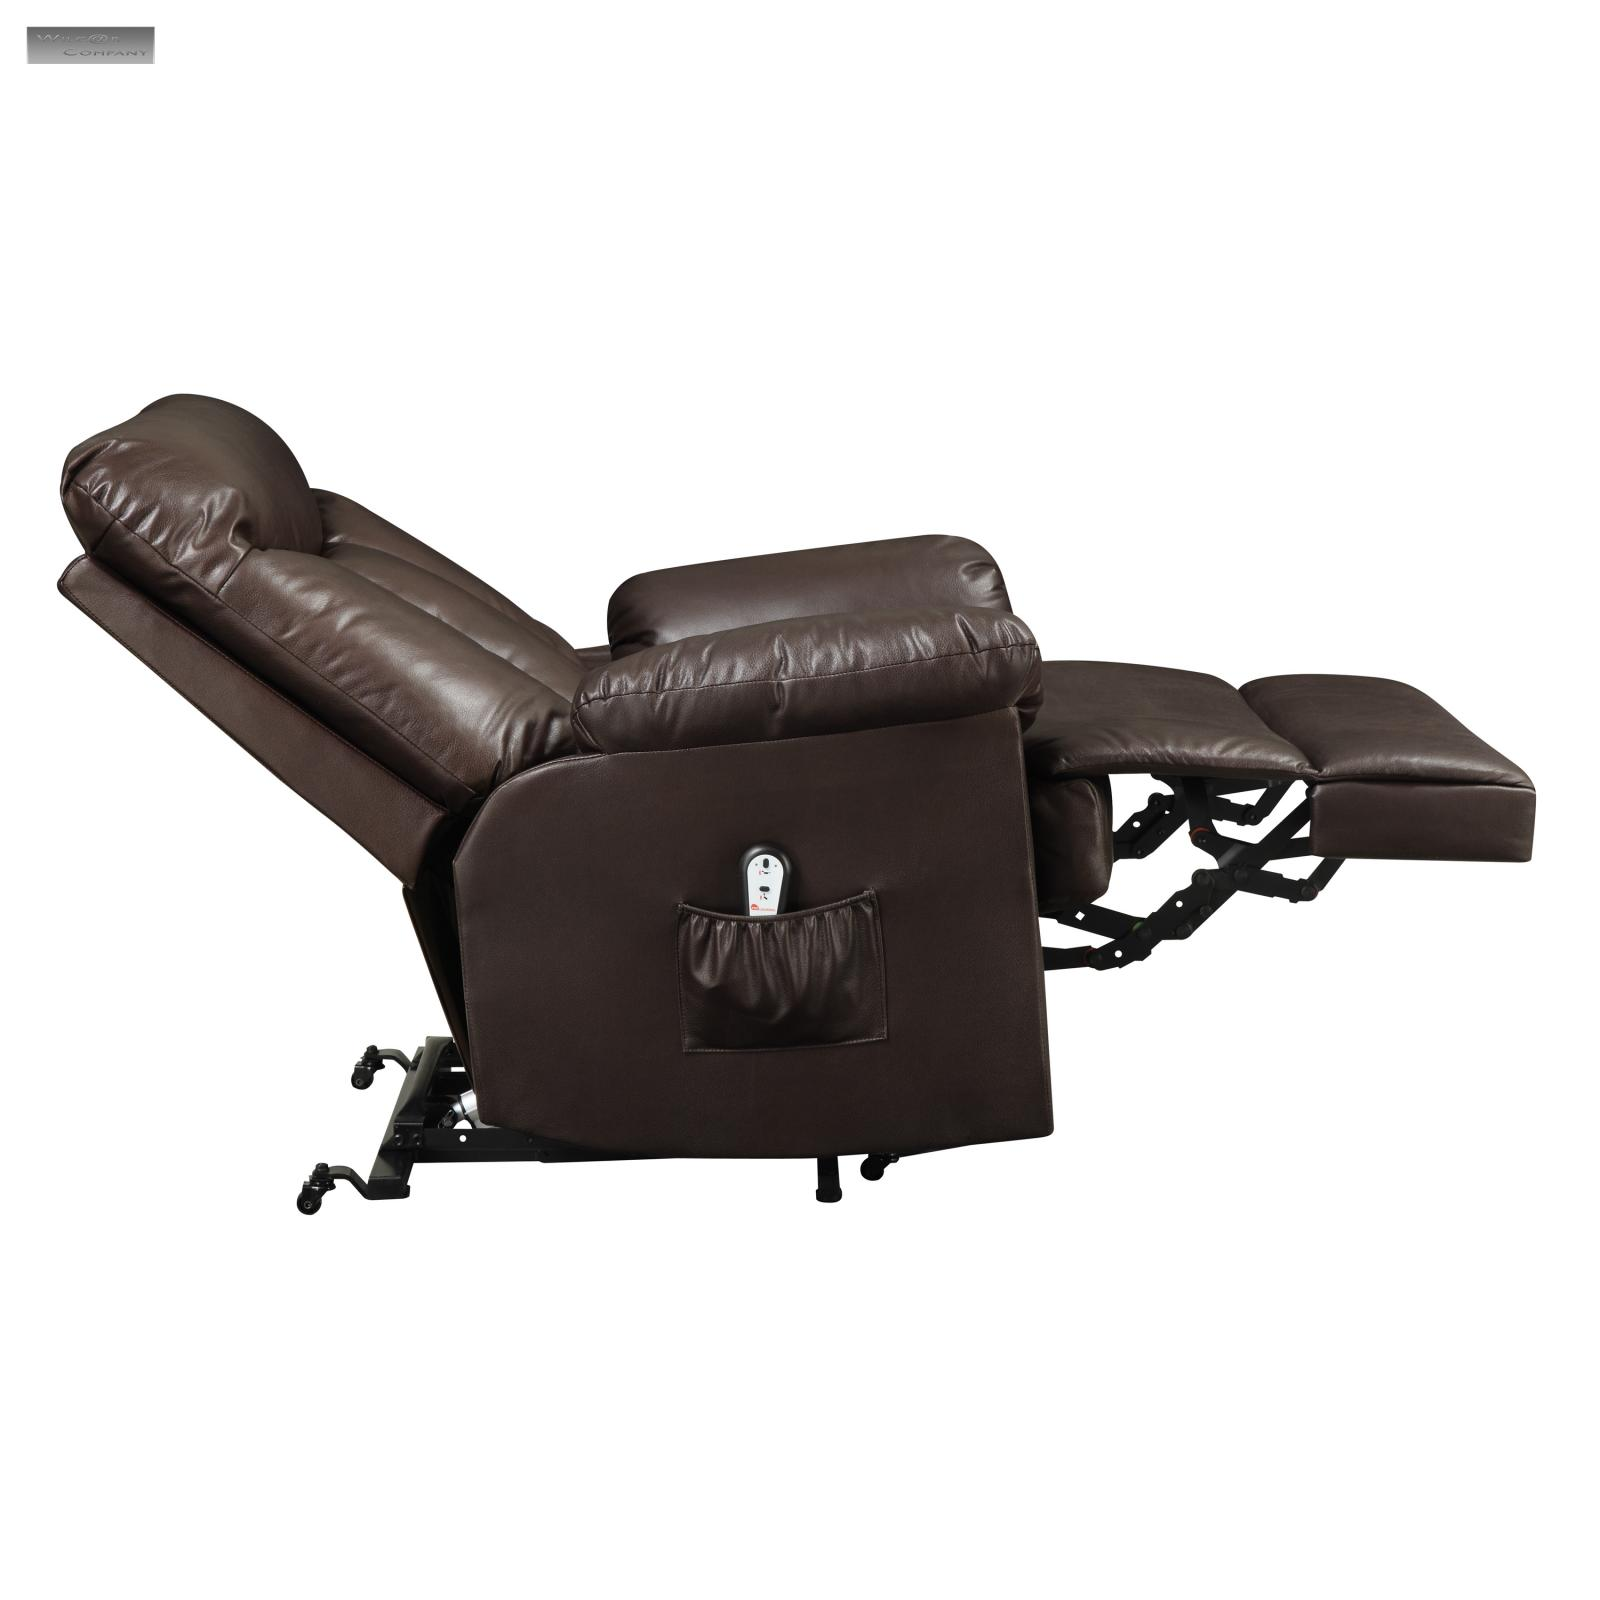 New Brown Lift Recliner Lazy Chair Leather Wall Hugger